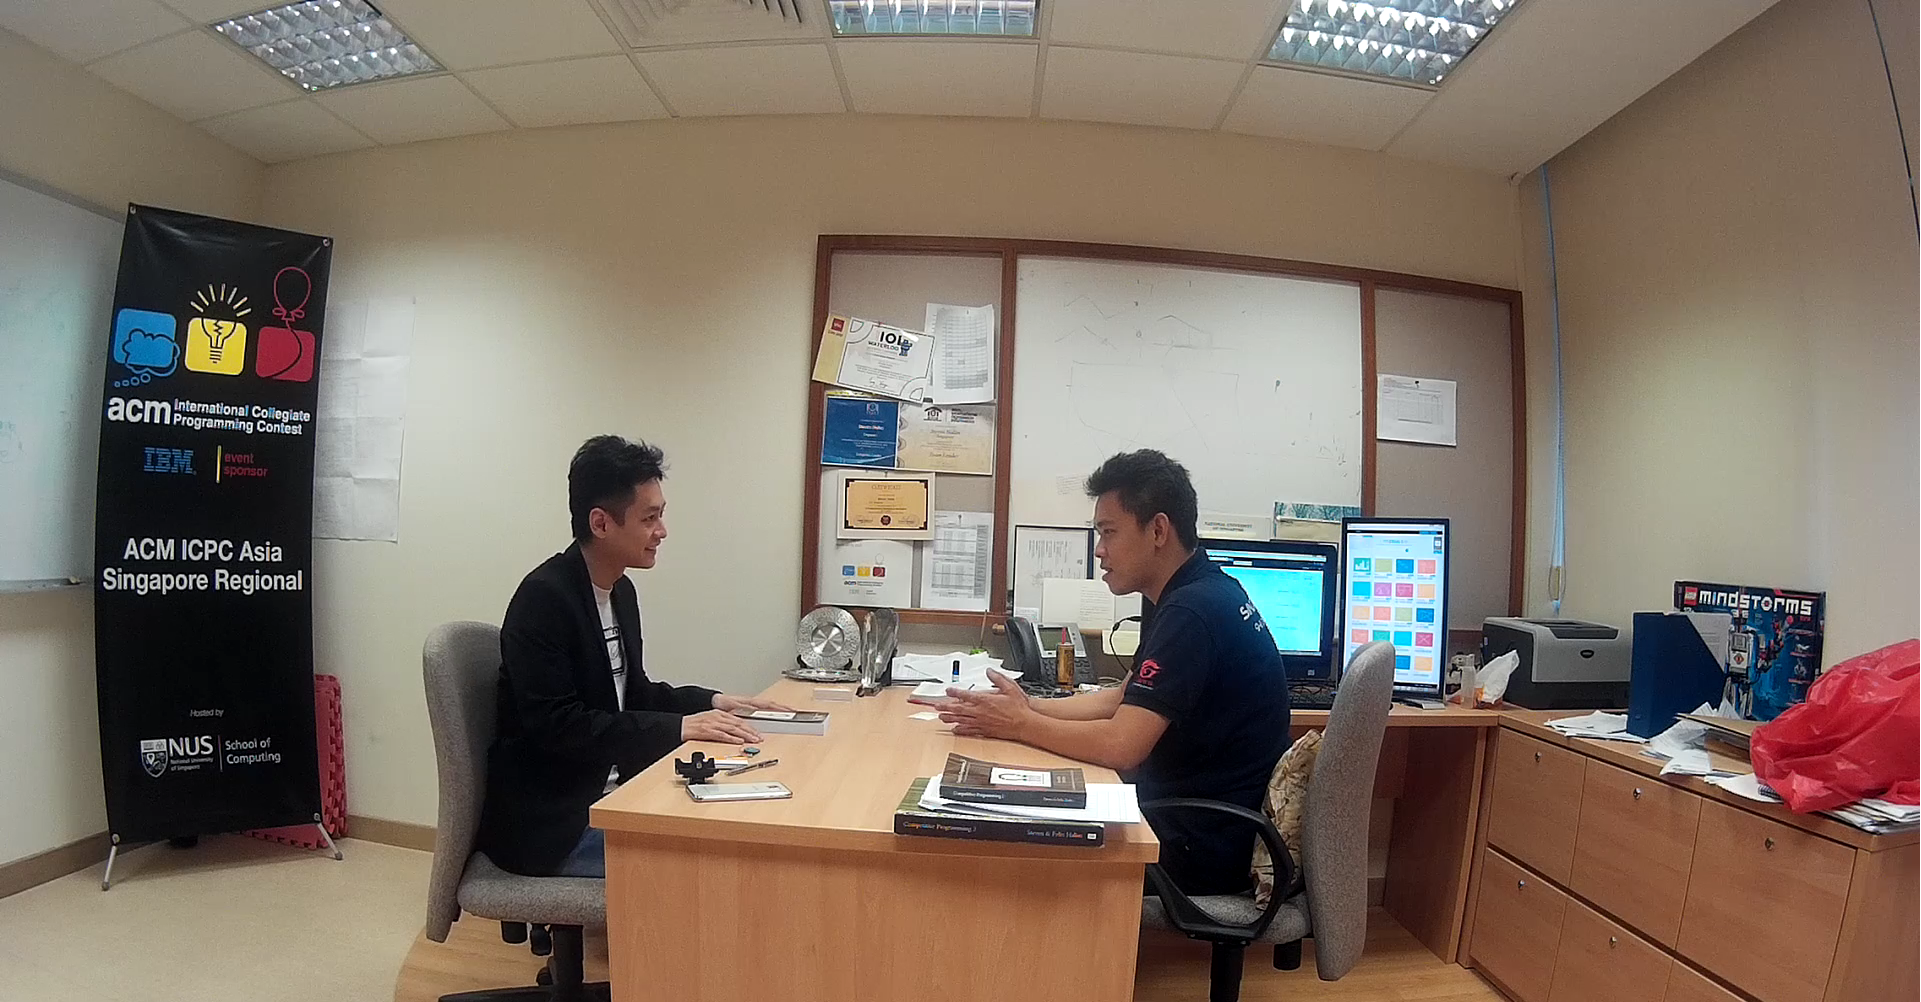 12.-Meeting-Steven-Halim-and-Dr.-Zhao